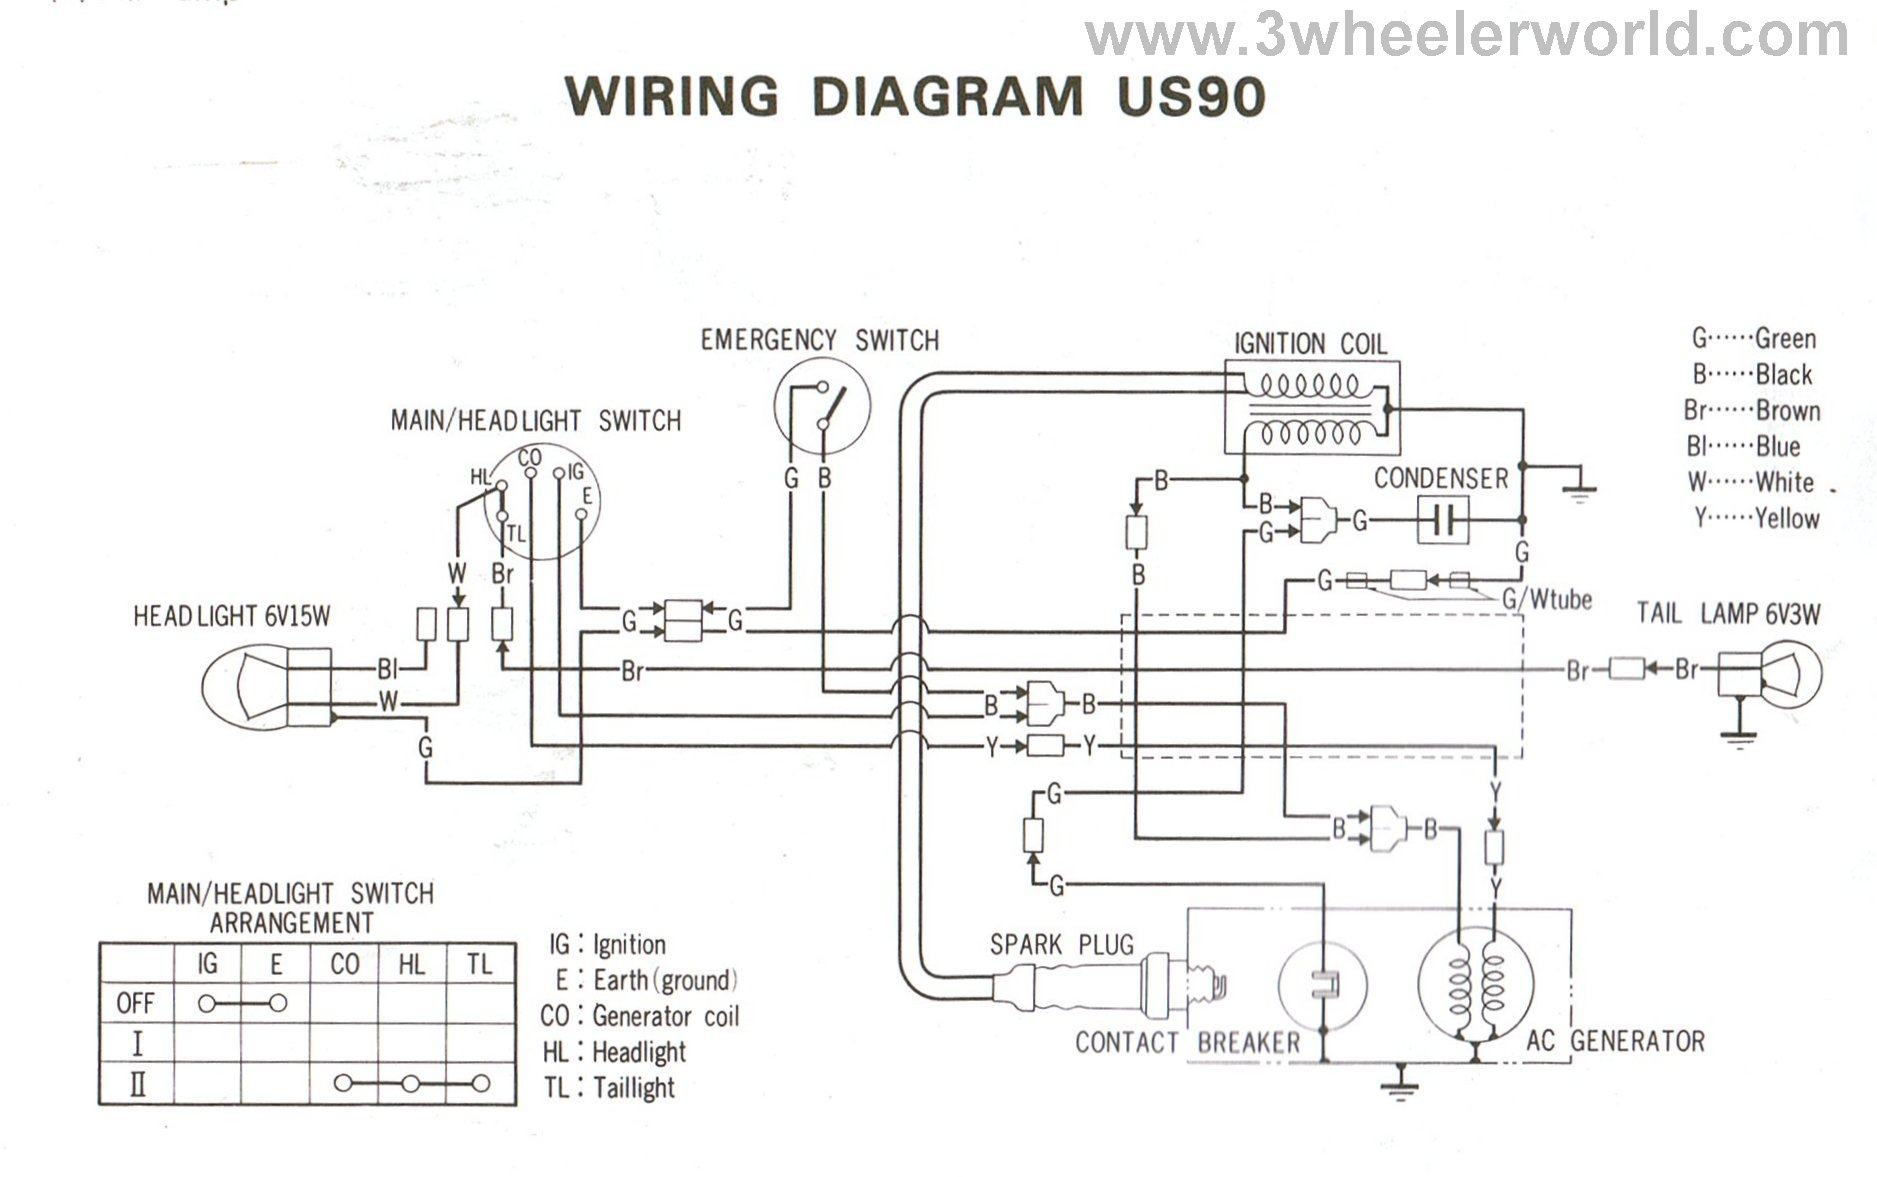 US90HM 3 wheeler world tech help honda wiring diagrams honda 90 atc wiring at crackthecode.co